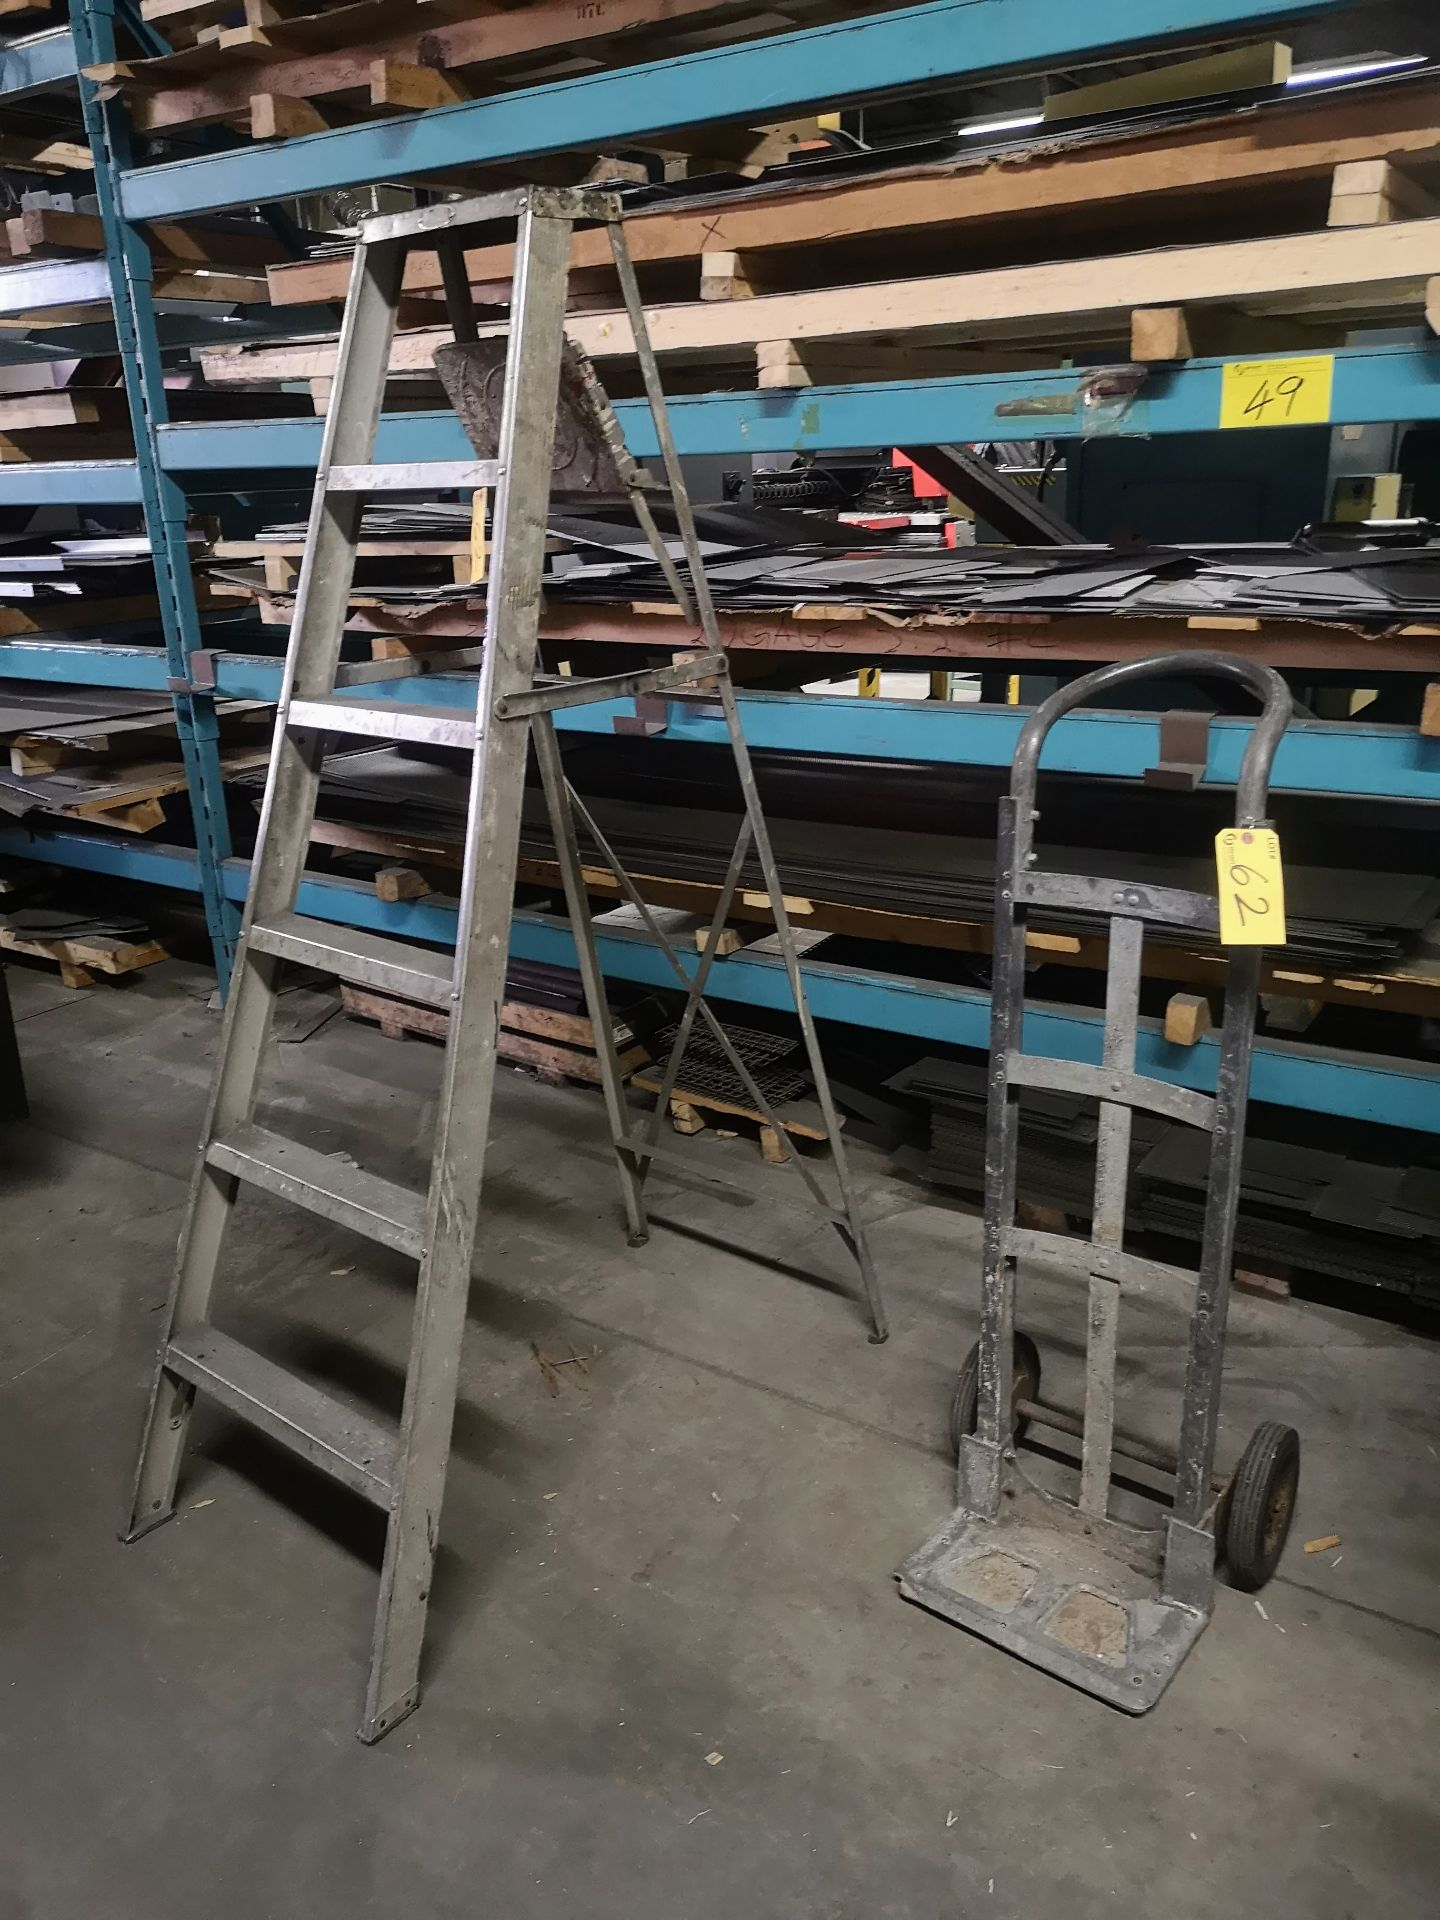 Lot 62 - ALUMINUM STEP LADDER, 2-WHEEL DOLLY, VACUUM CLEANER